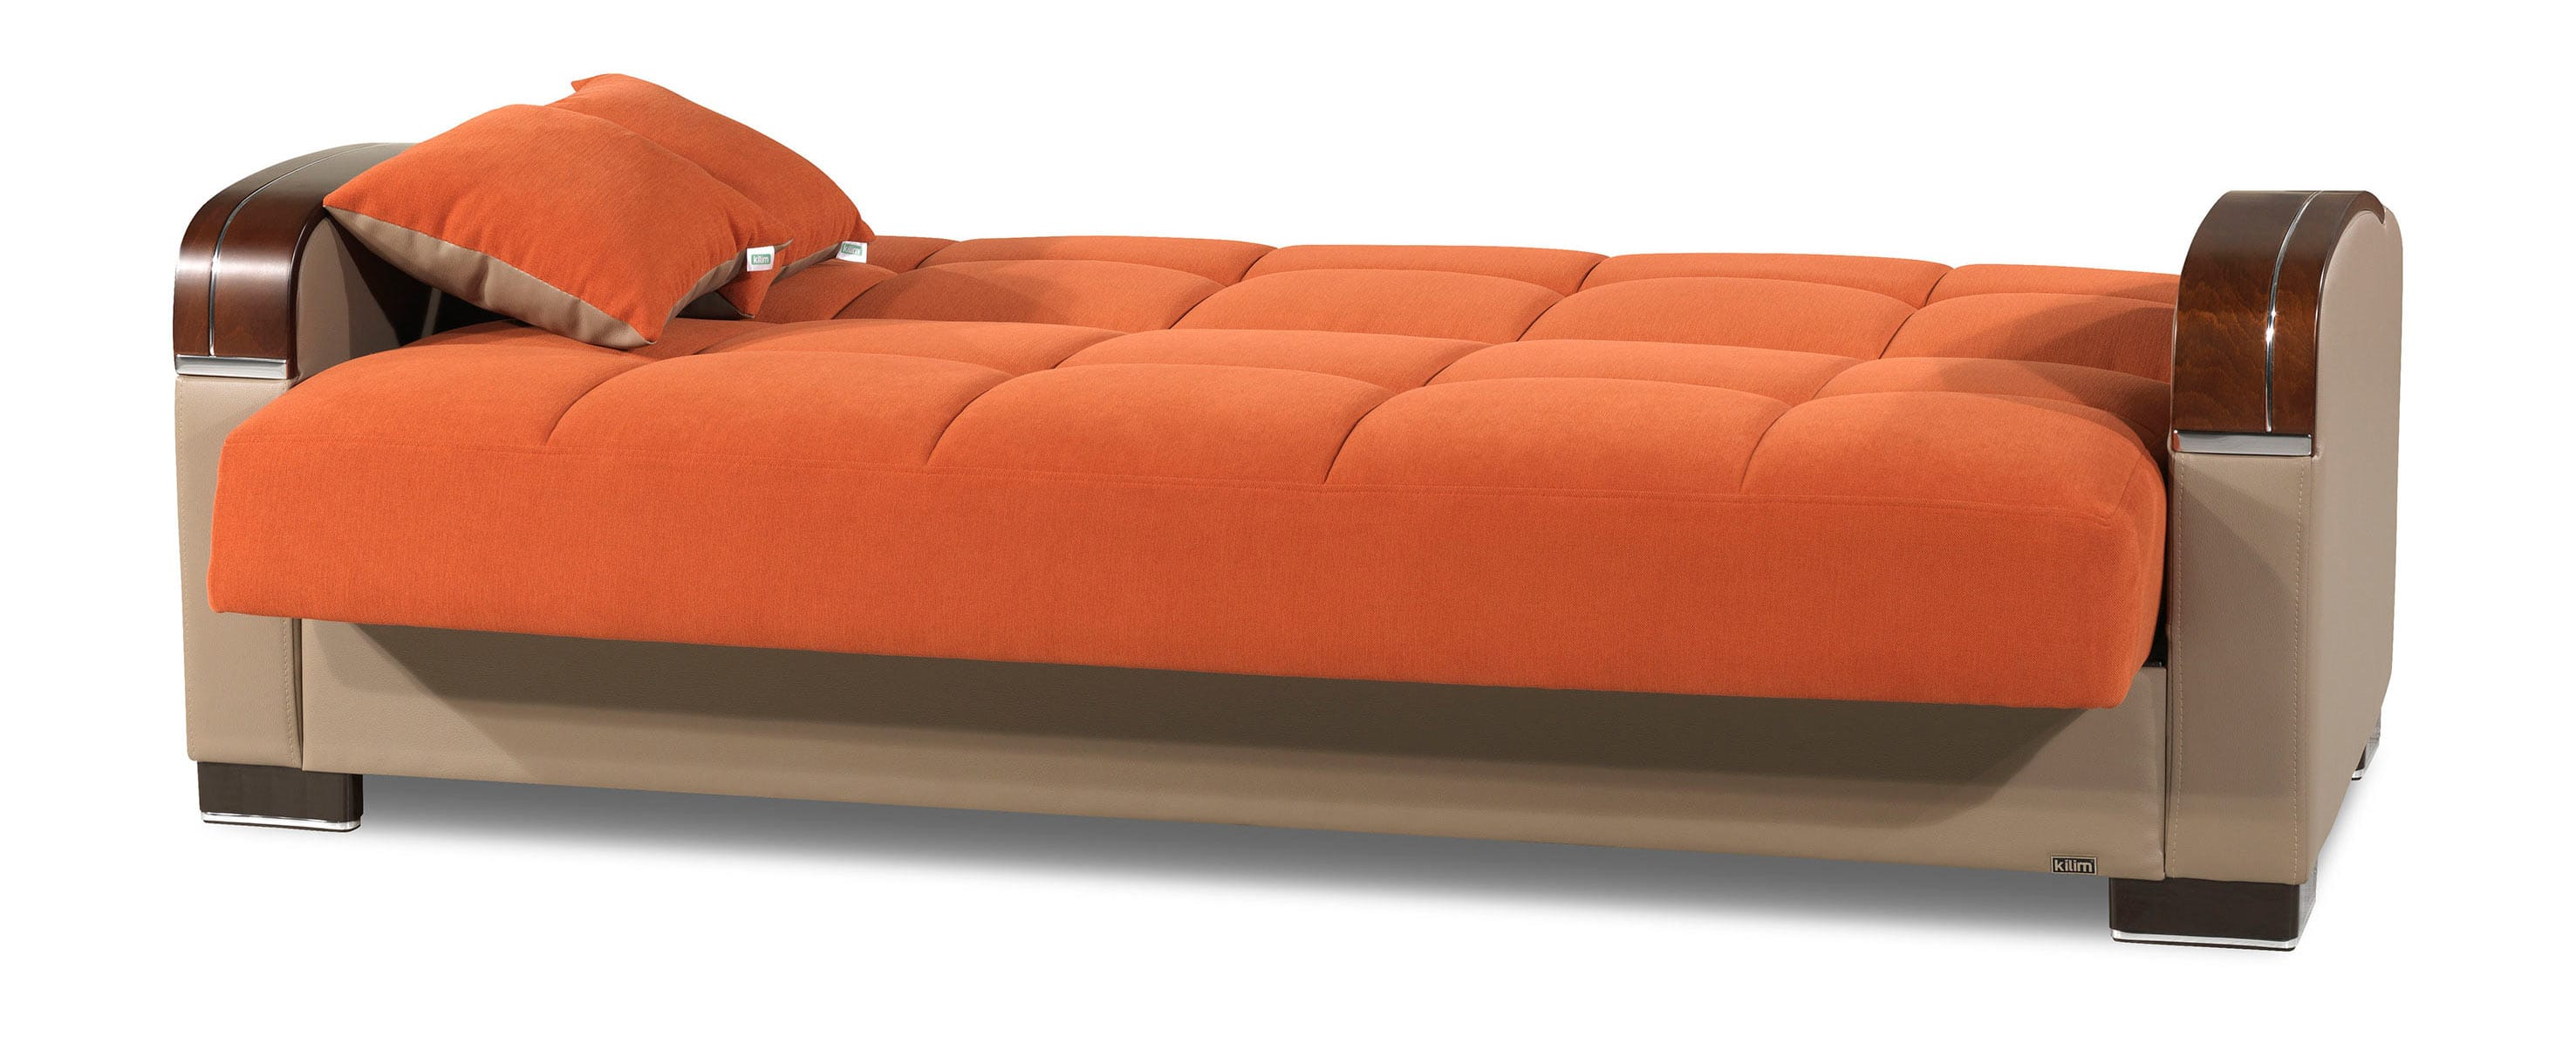 Sofa Orange Mobimax Orange Convertible Sofa Bed By Casamode